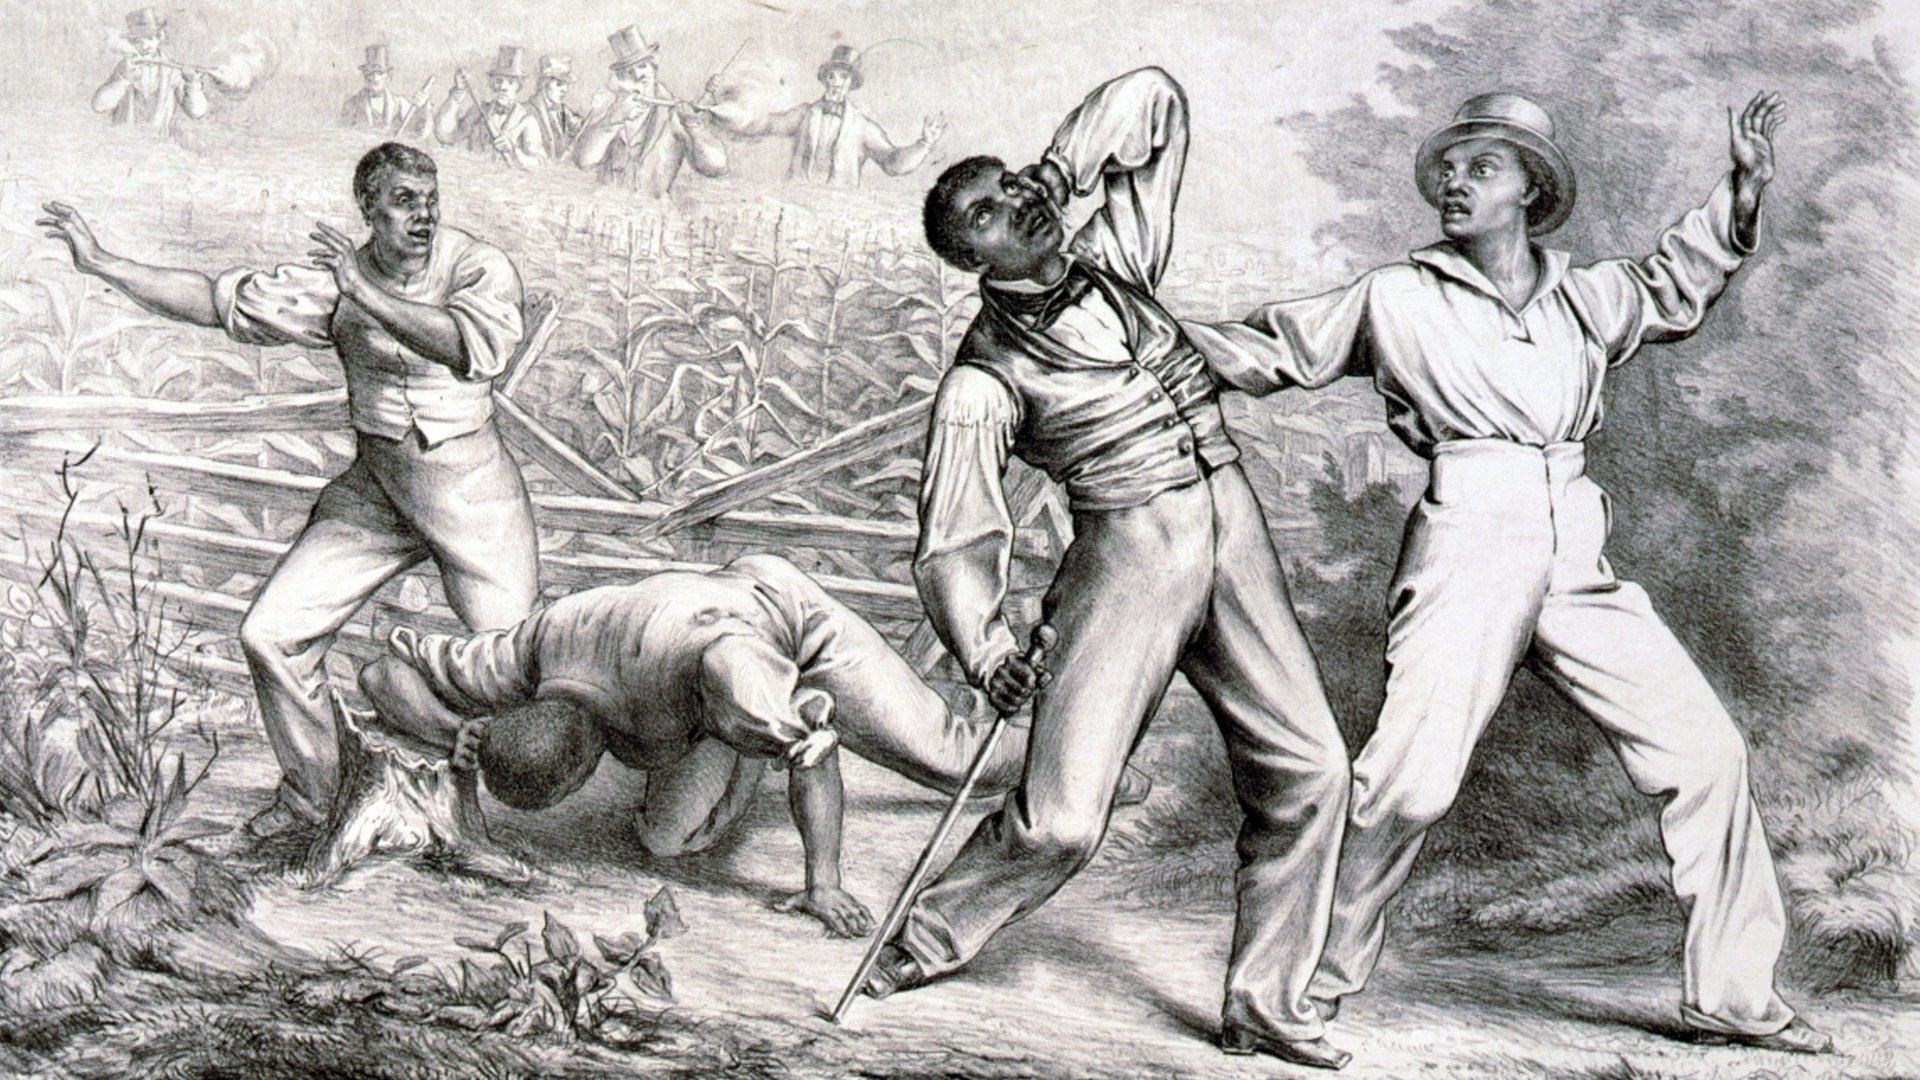 The Fugitive Slave Act increased federal and free-state responsibility for the recovery of fugitive slaves, appointing federal commissioners empowered to issue warrants for their arrest. (Credit: Universal History Archive/UIG via Getty images)